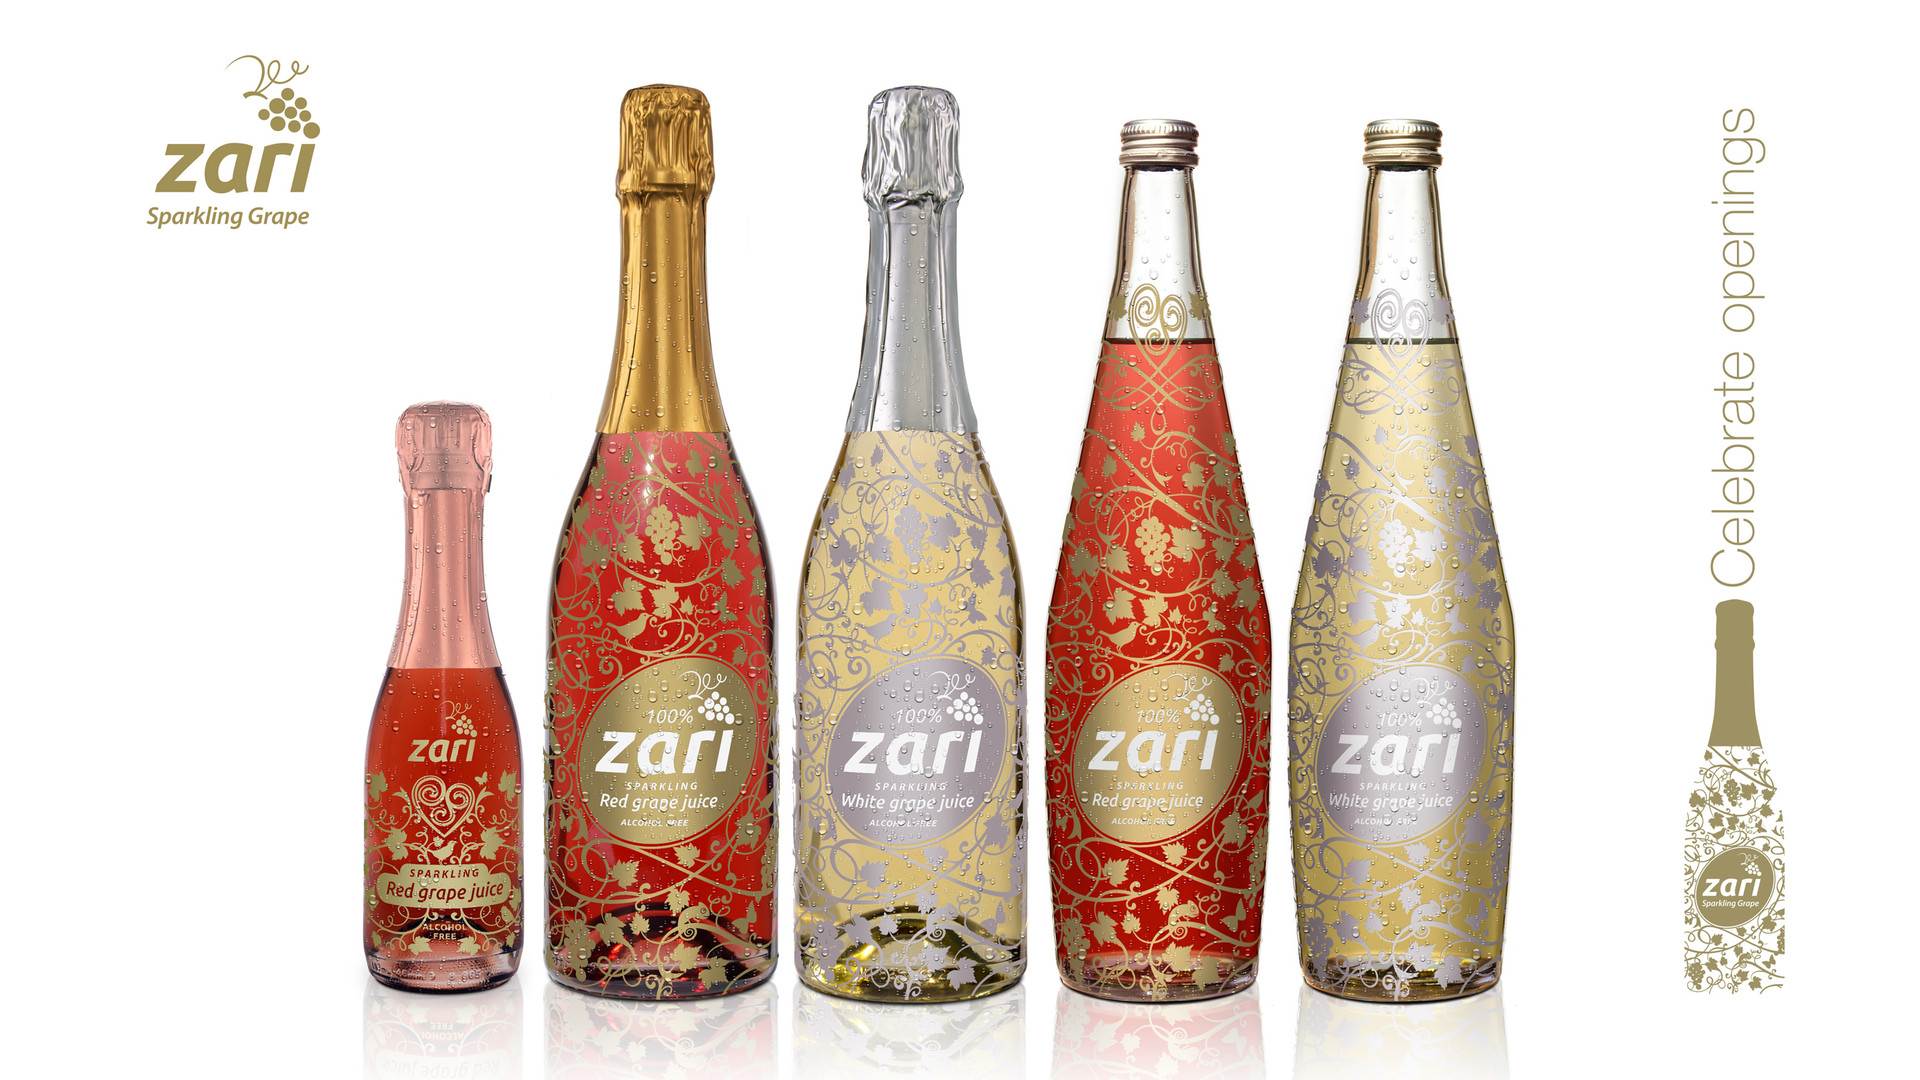 Zari Sparkling Grape packaging